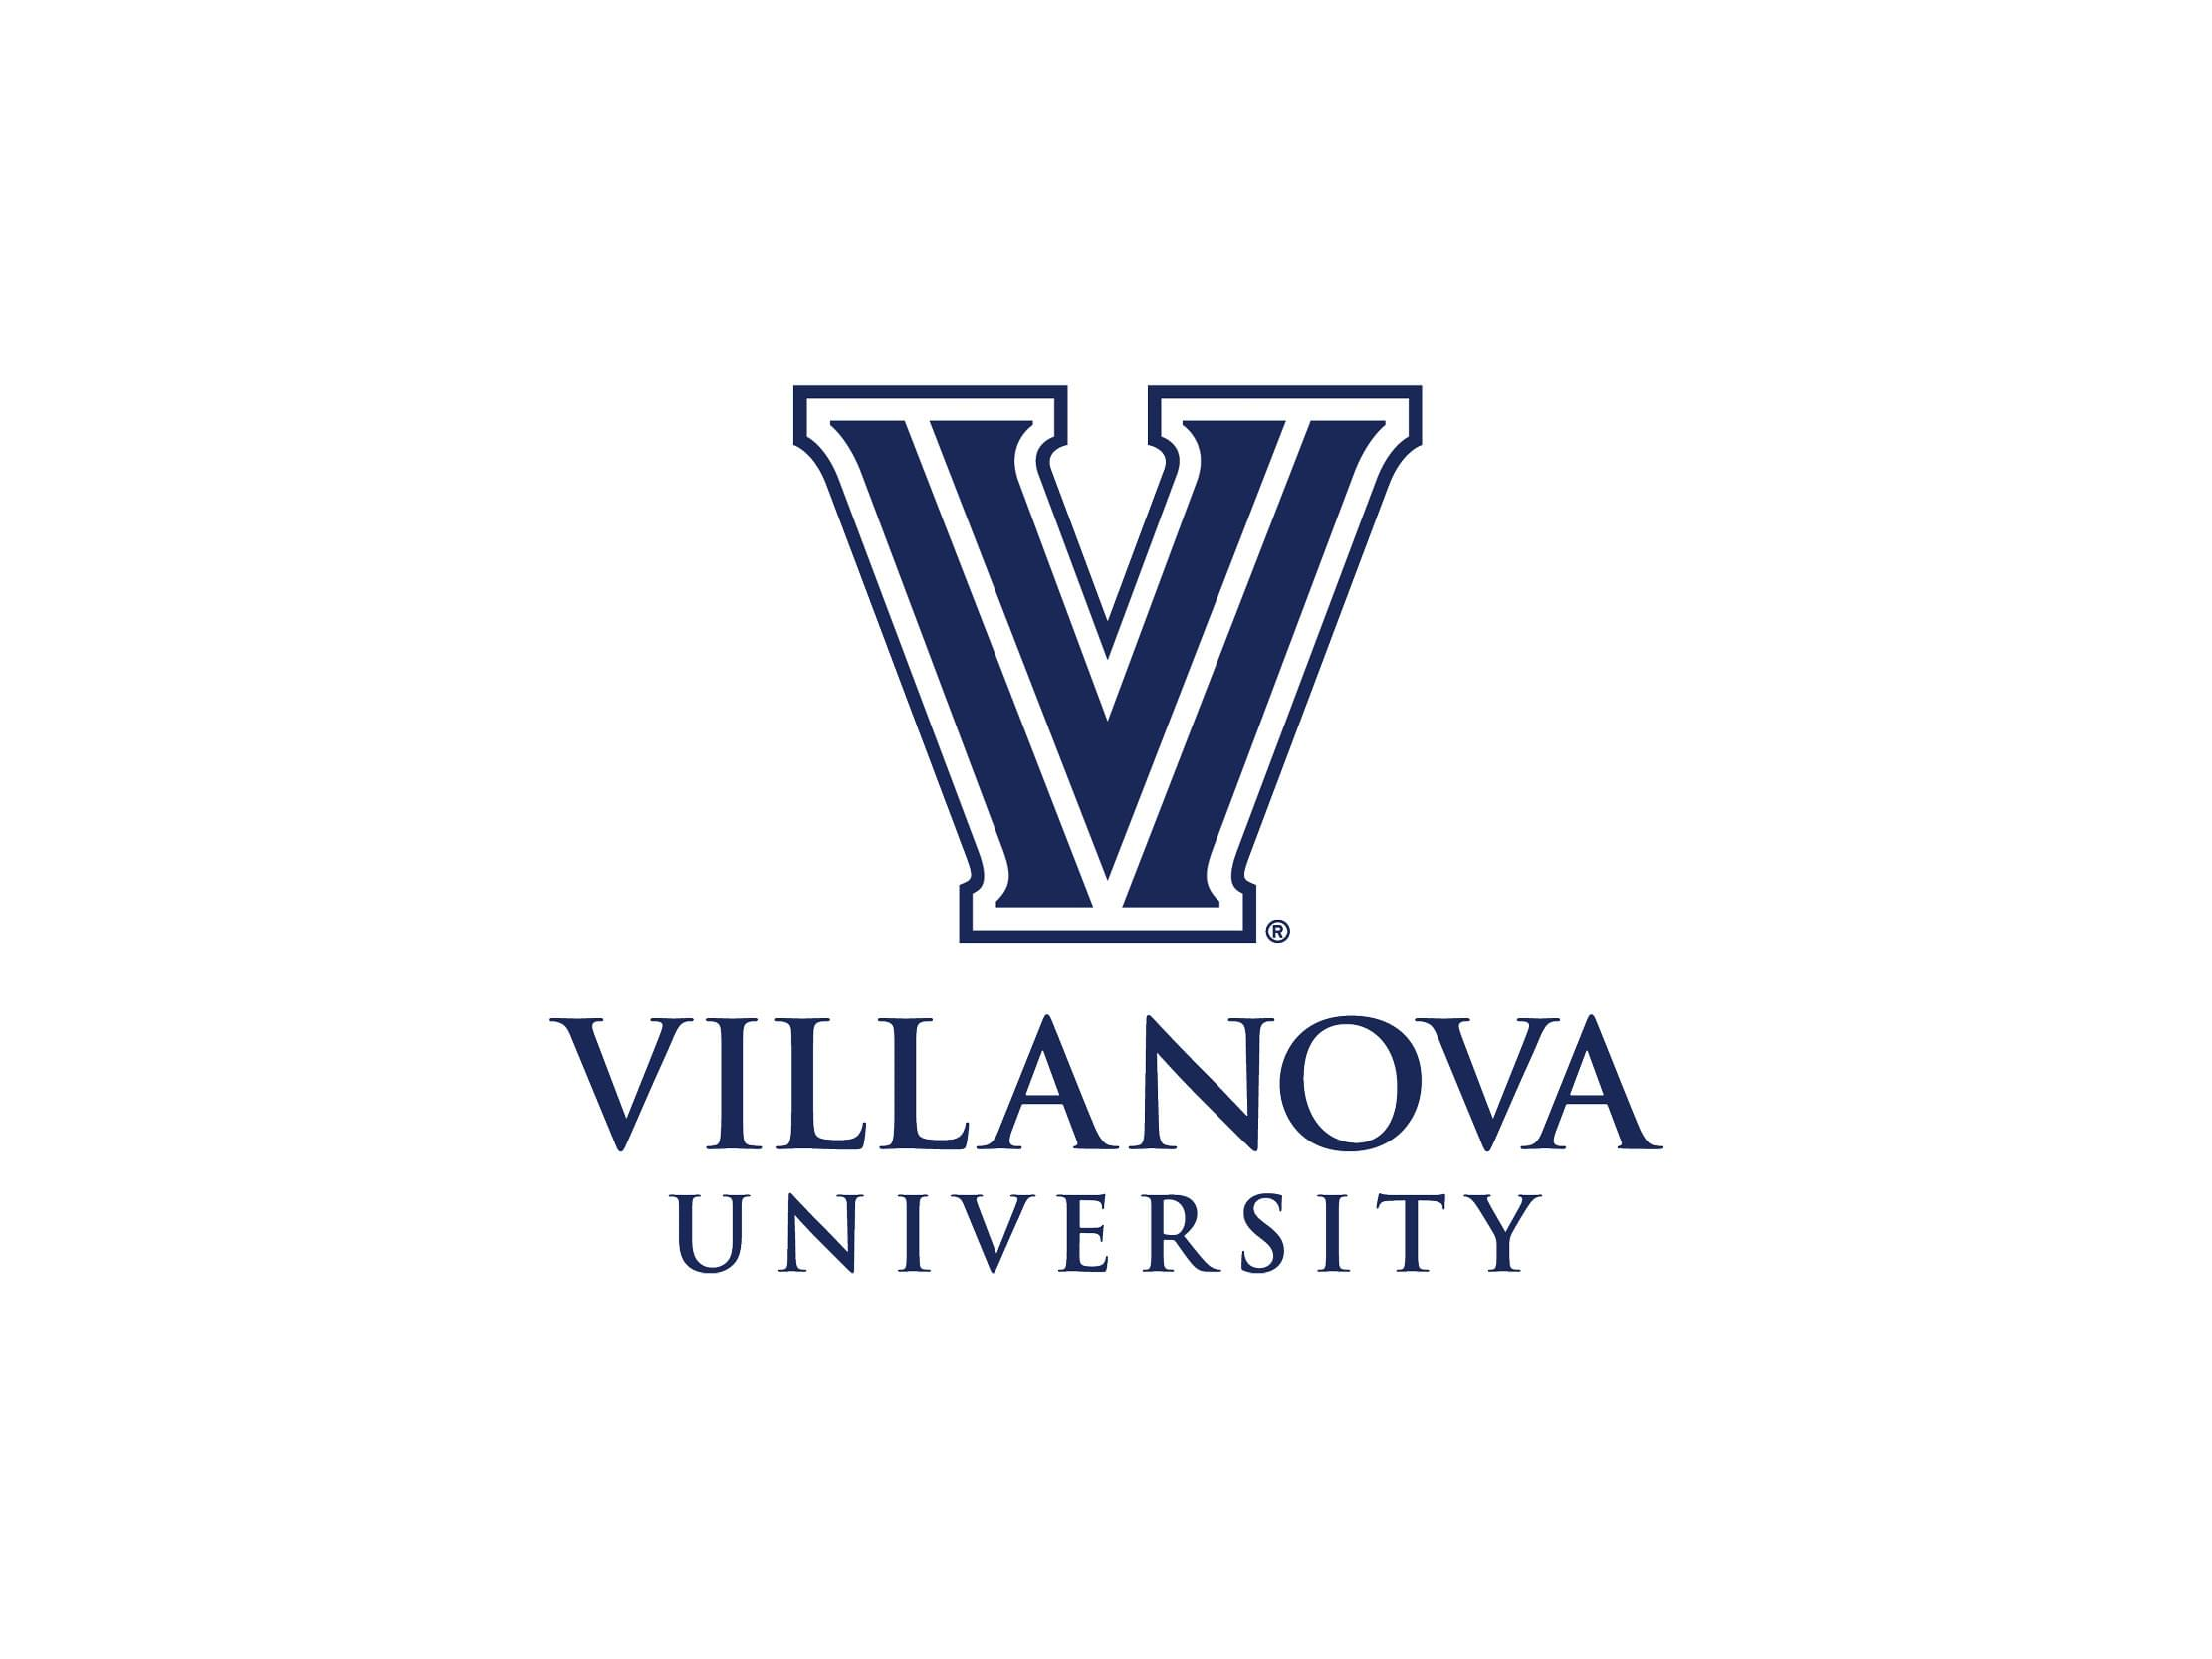 Villanova University discounts on online certificates,